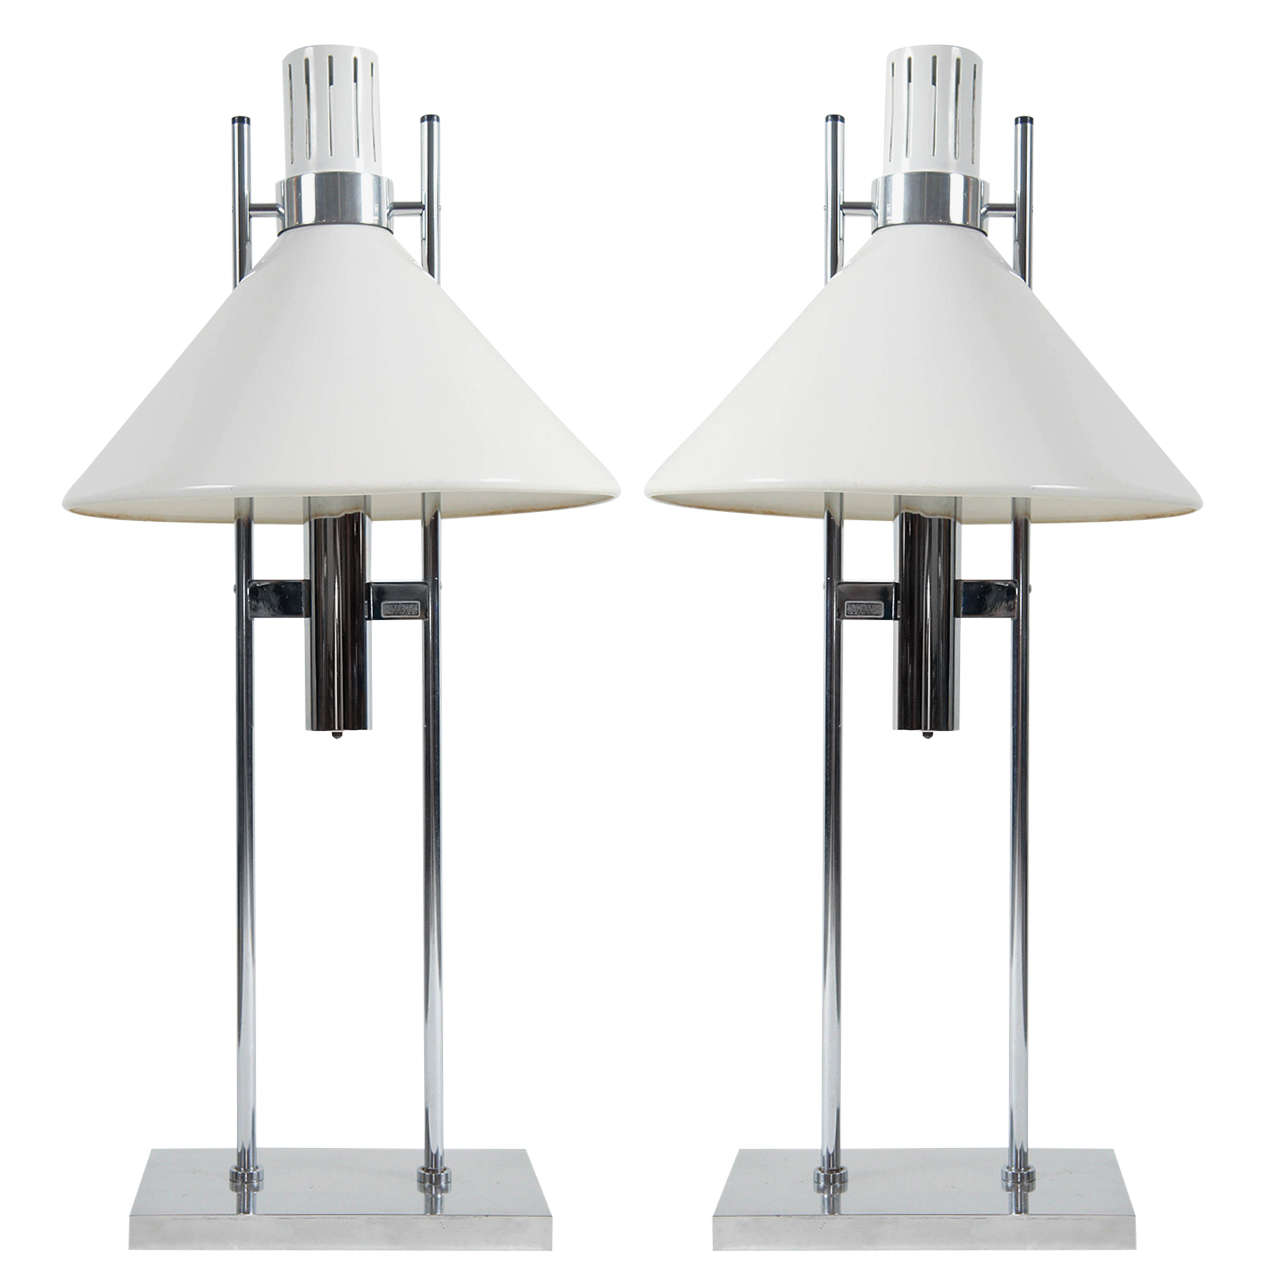 pair of space age table lamps in polished aluminum by robert sonneman for sale at 1stdibs. Black Bedroom Furniture Sets. Home Design Ideas